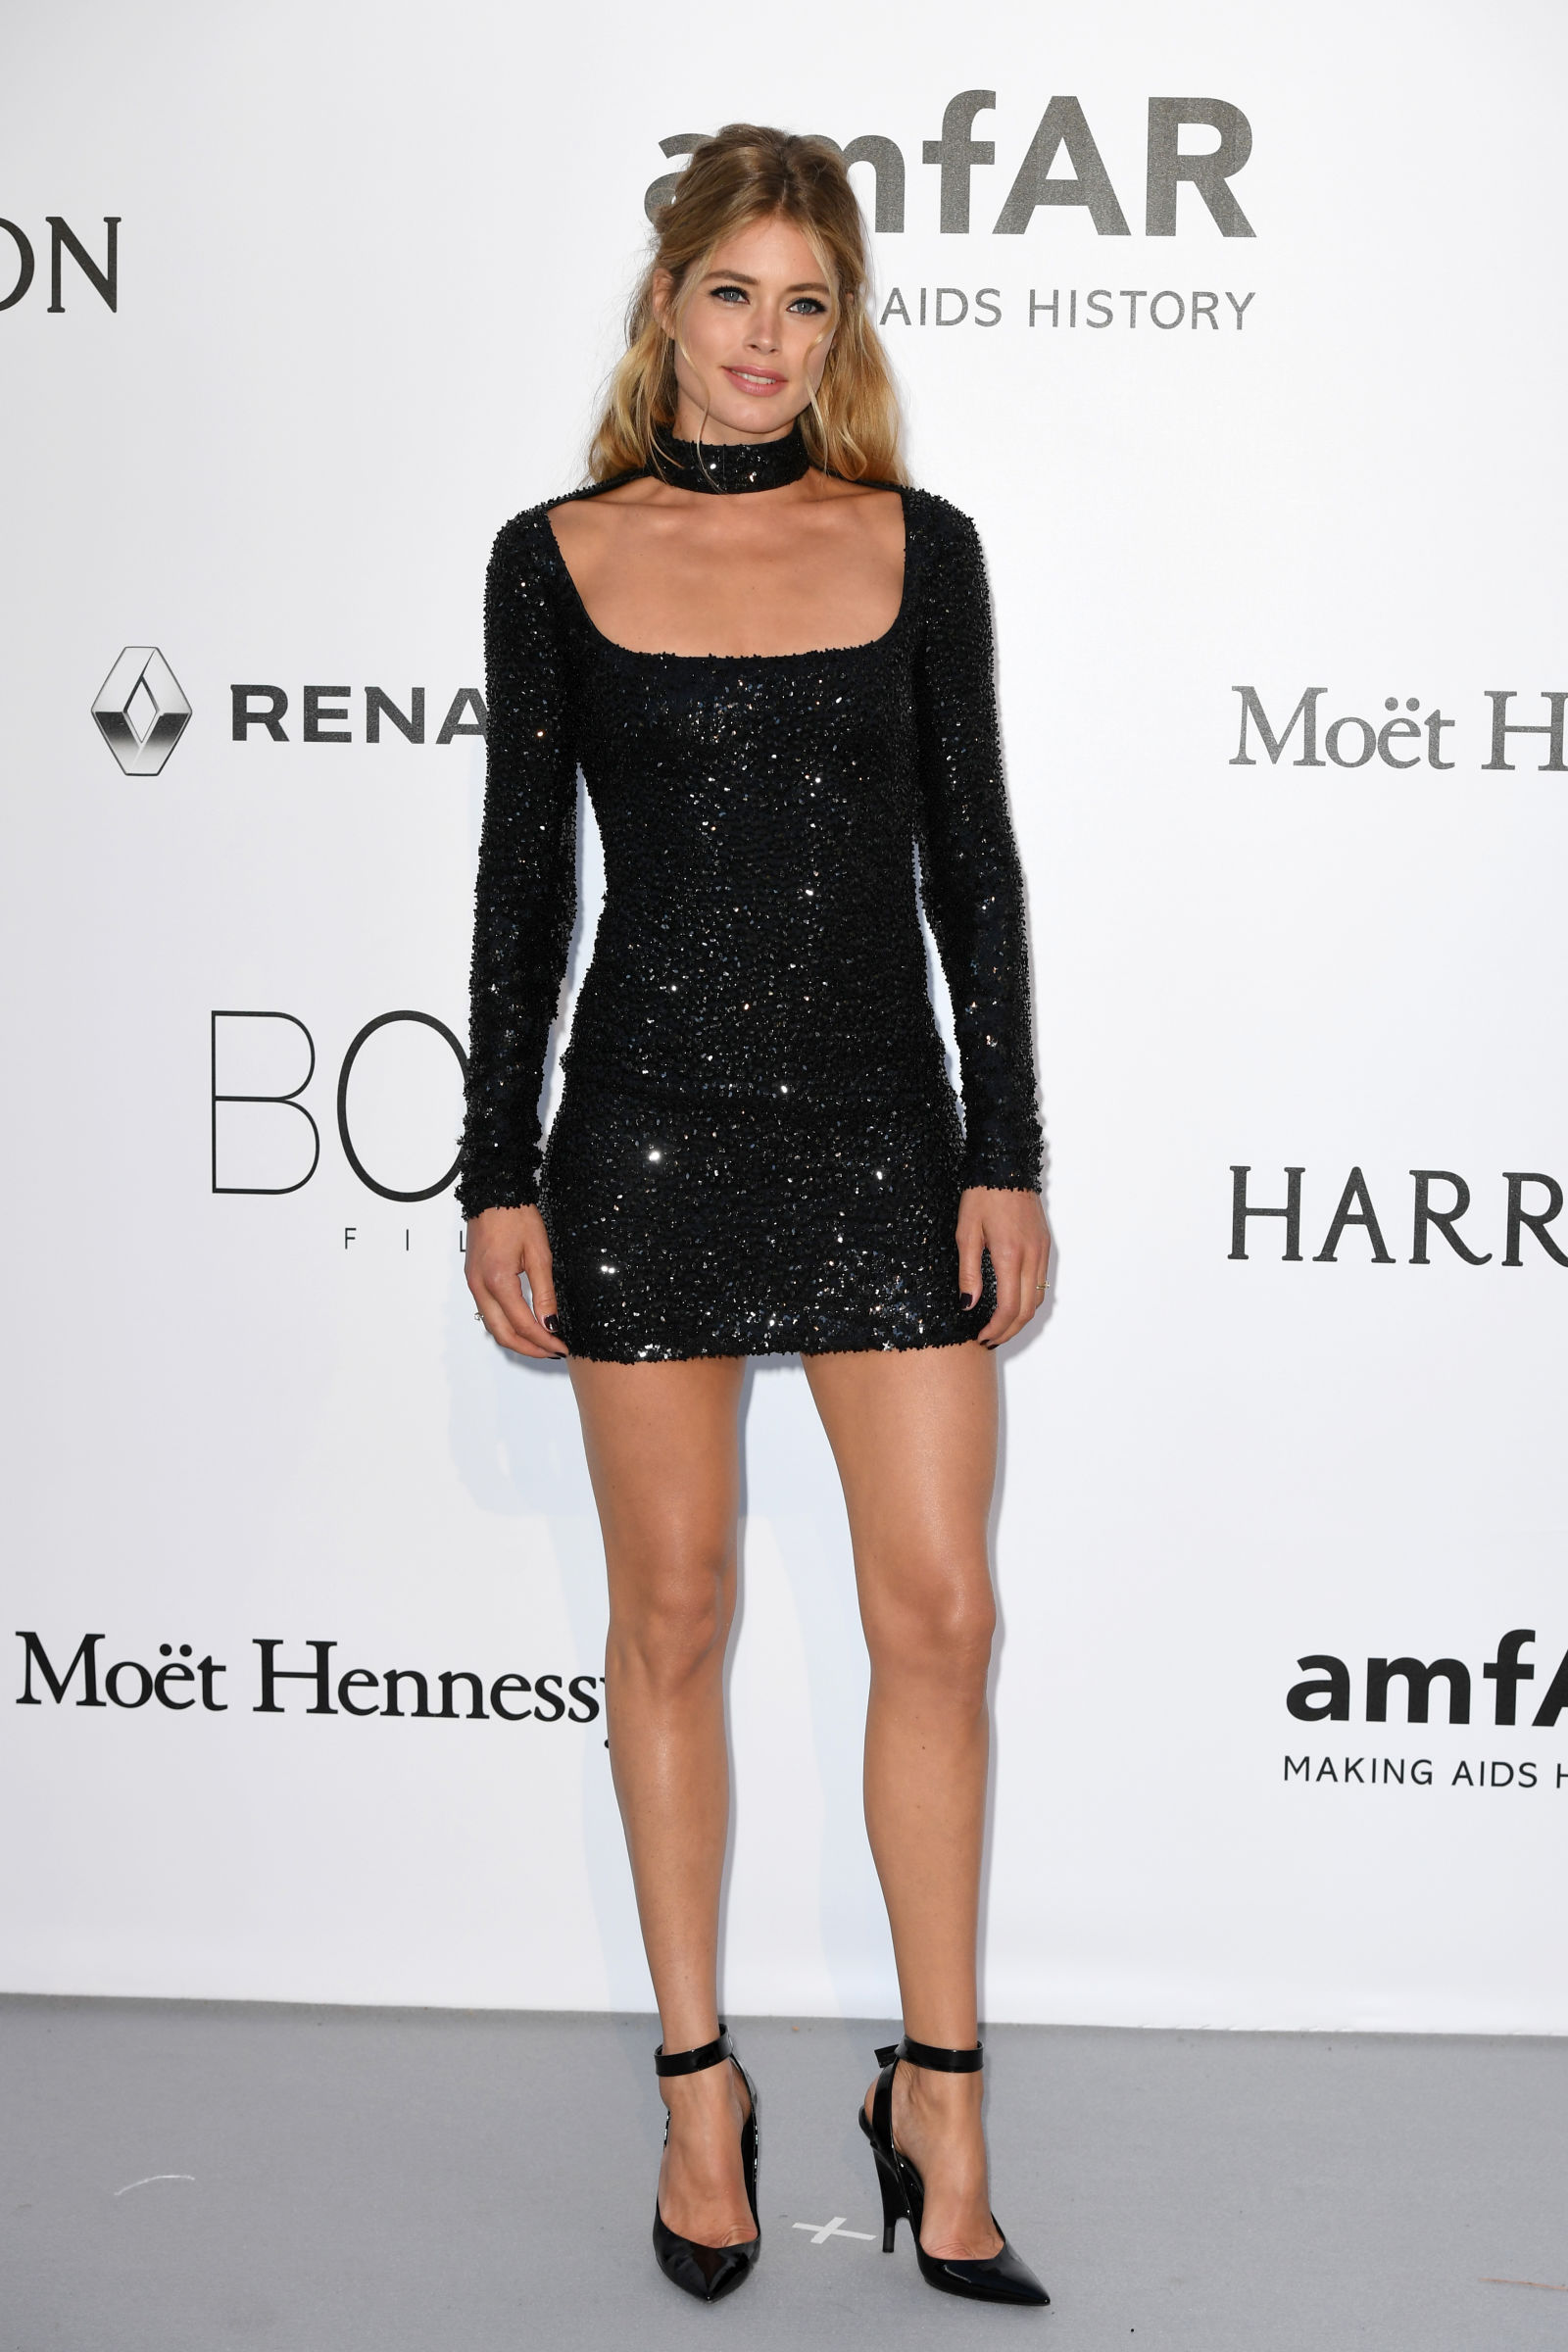 Doutzen Kroes half updo hair at amfAR 2016 red carpet